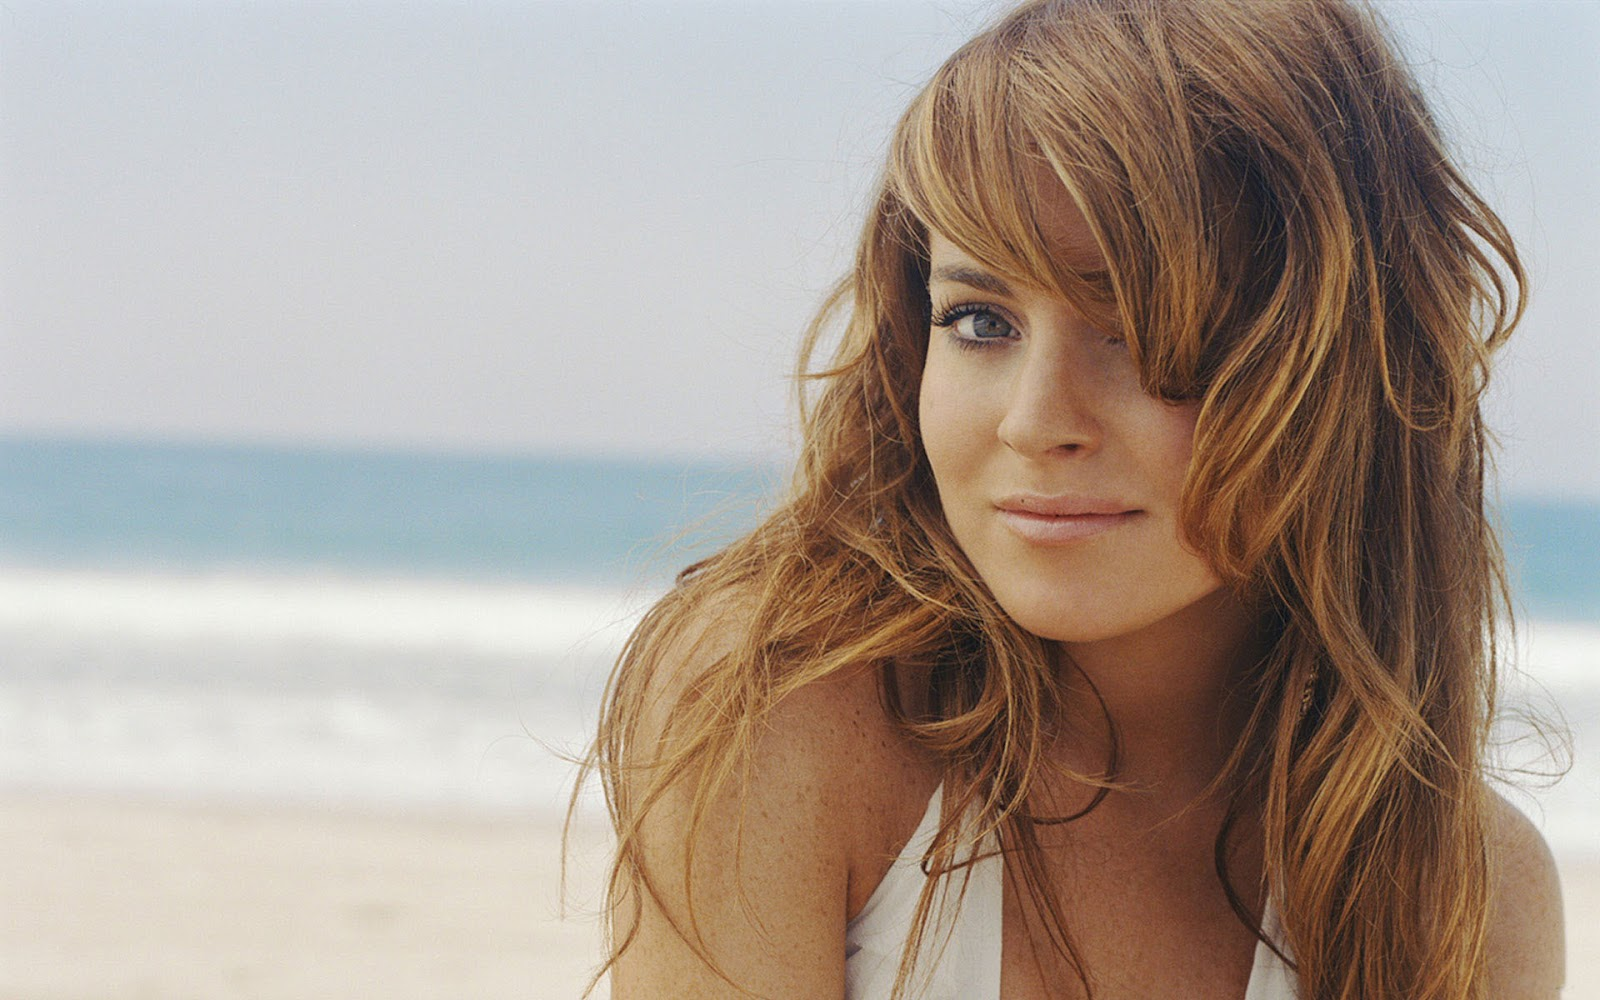 Sexy lindsay lohan hd wallpappers hd celebrity wallpapers - Celebrity background ...